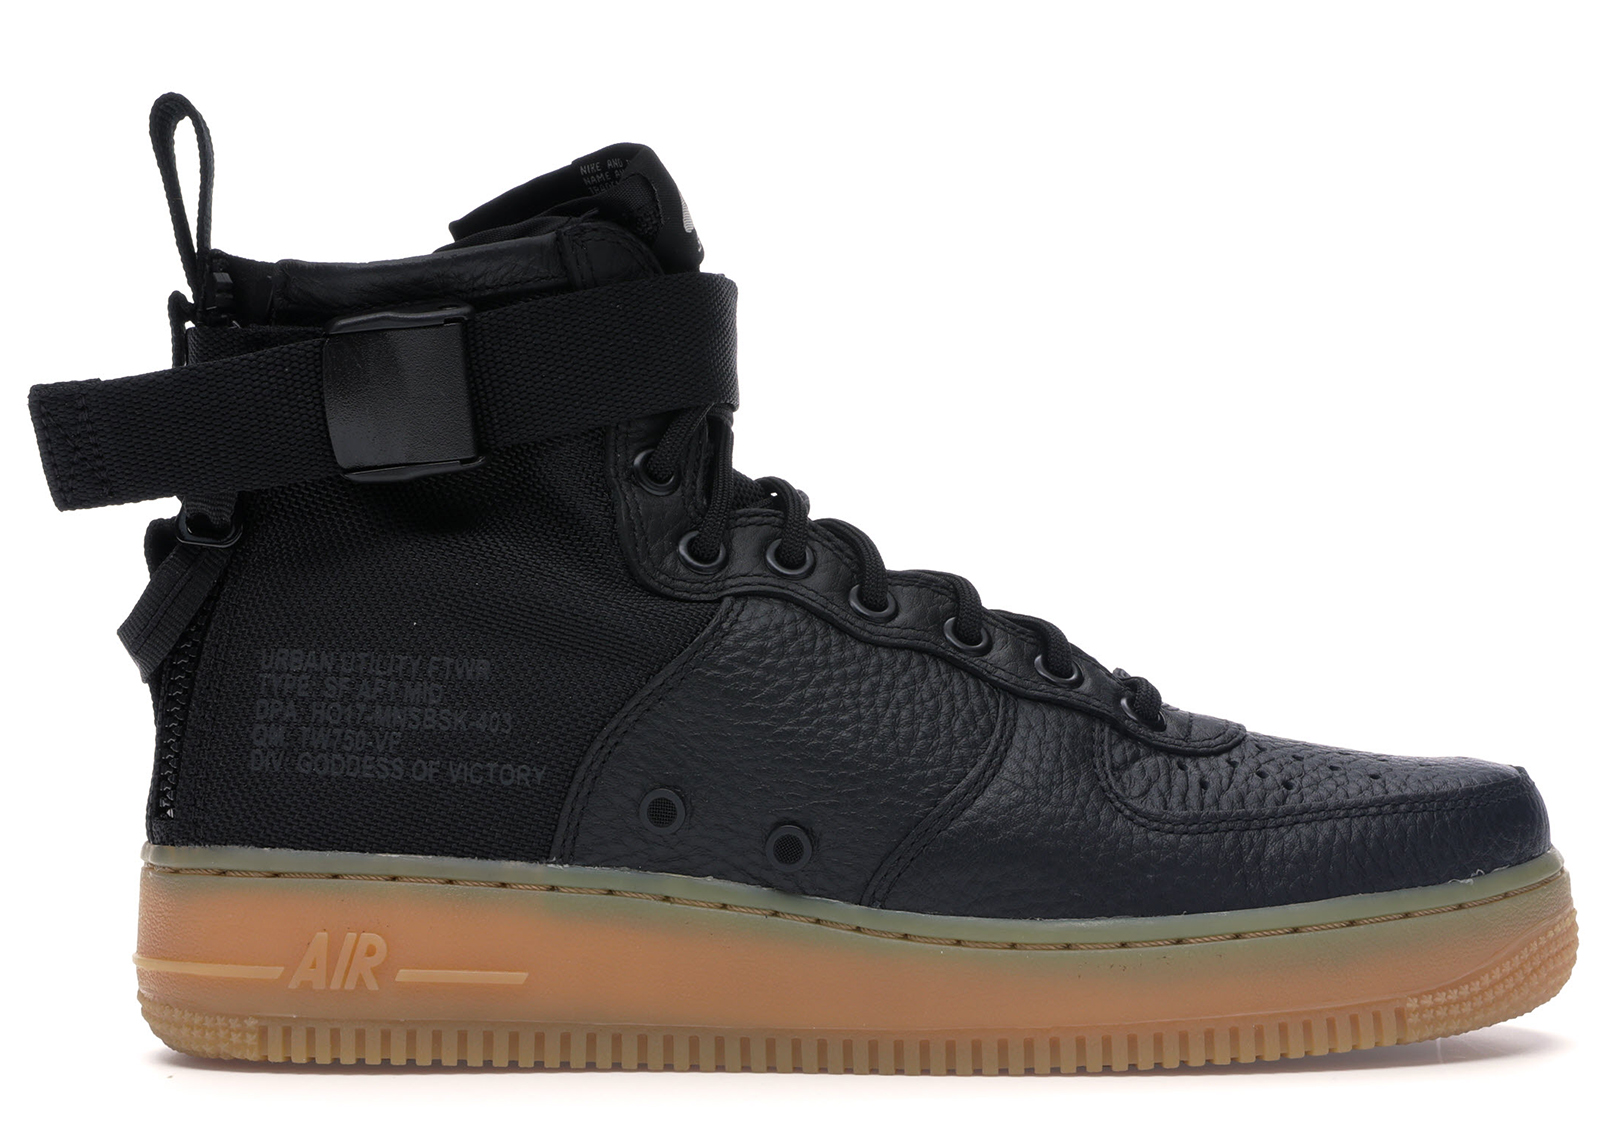 SF Air Force 1 Black Gum (2017 With Bag)